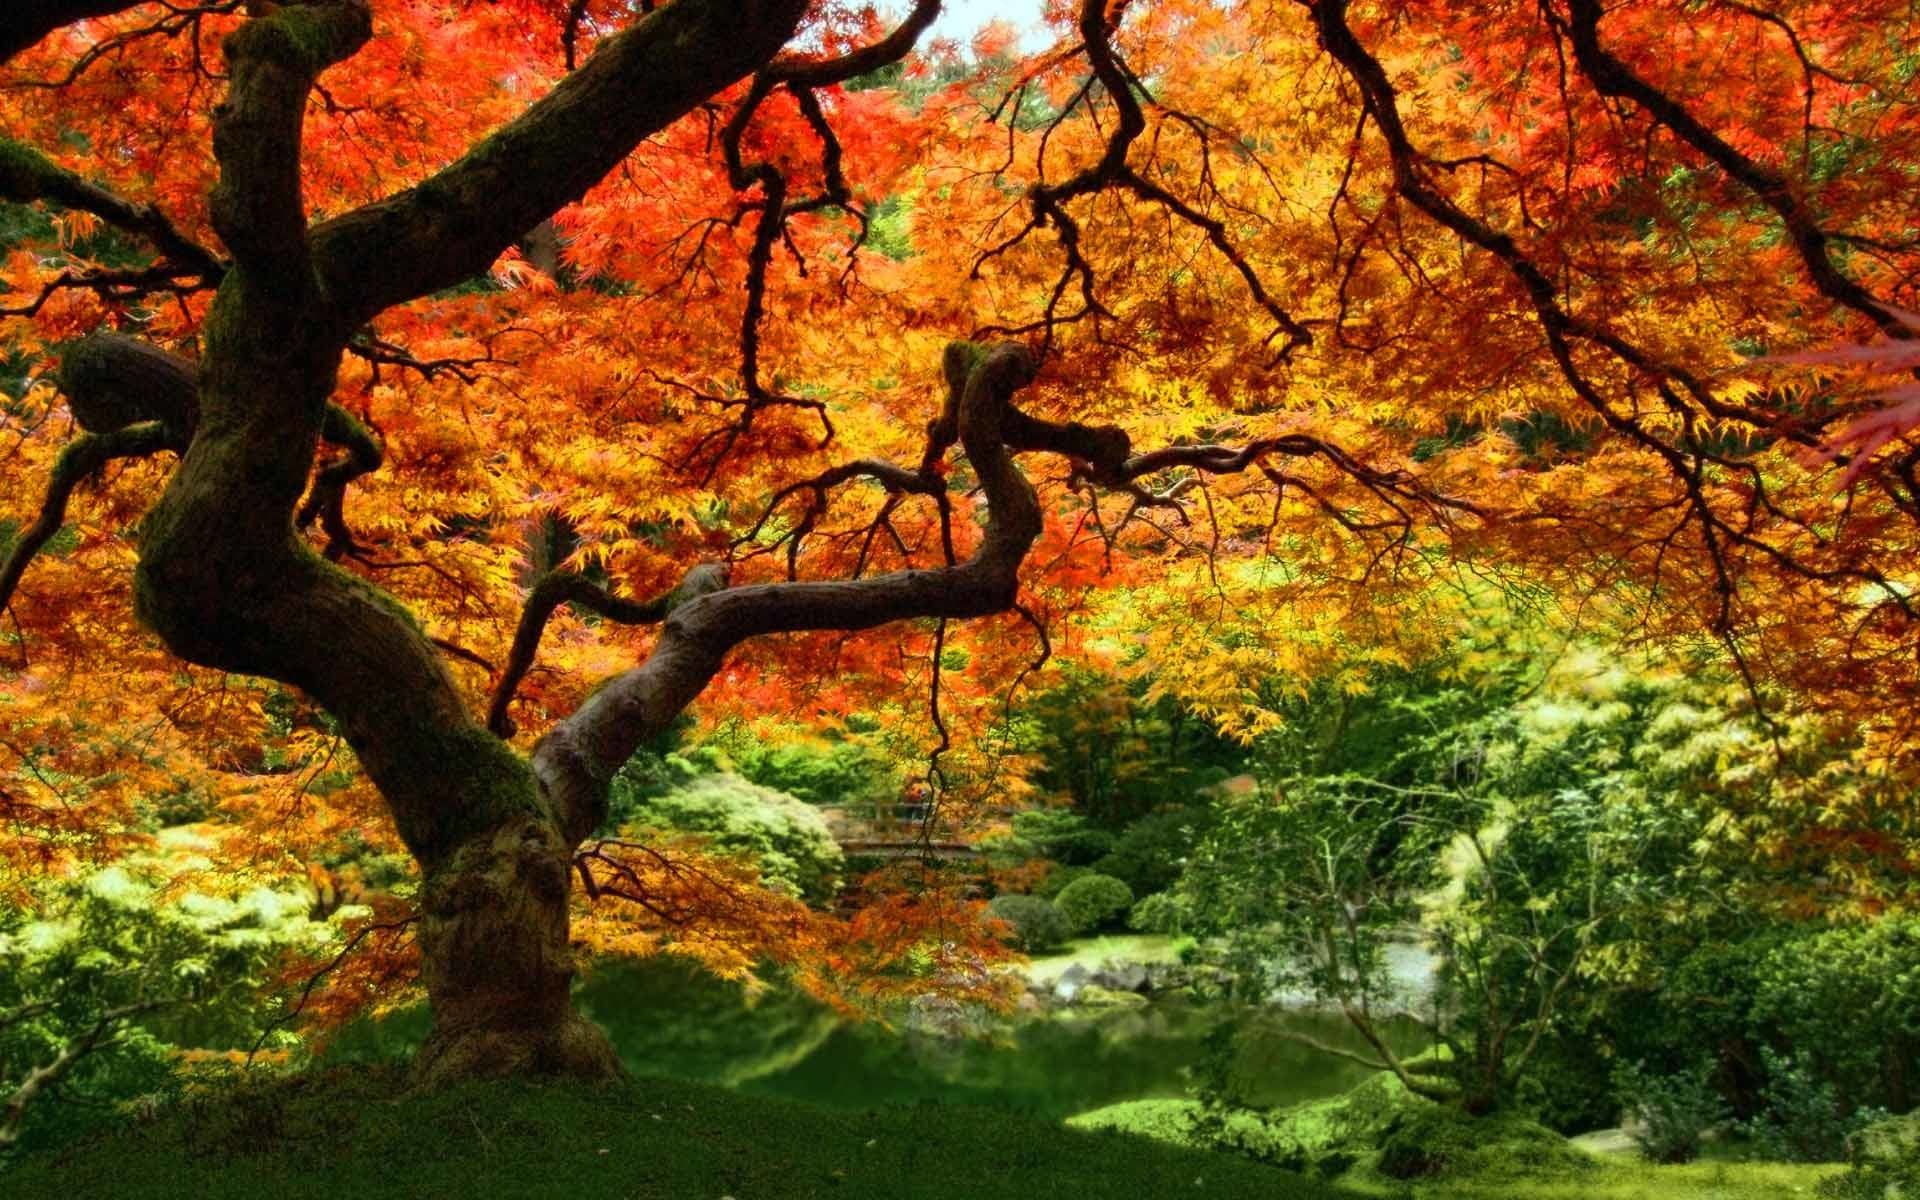 Res: 1920x1200, Free Autumn Wallpaper Backgrounds - Wallpaper Cave